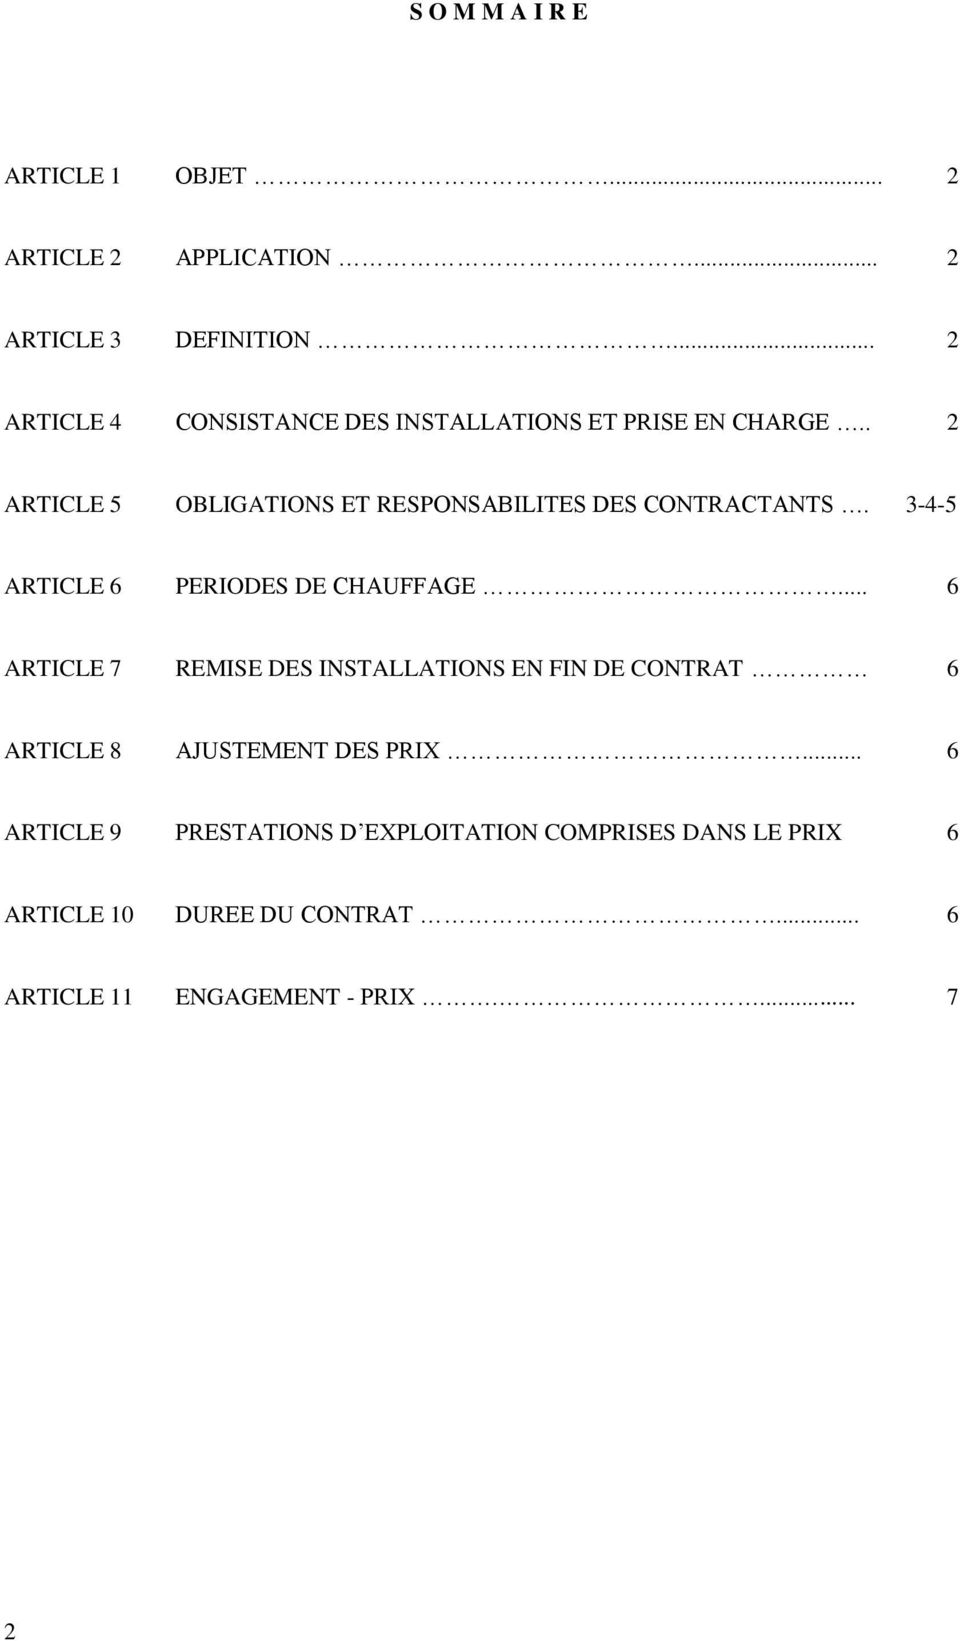 . 2 ARTICLE 5 OBLIGATIONS ET RESPONSABILITES DES CONTRACTANTS. 3-4-5 ARTICLE 6 PERIODES DE CHAUFFAGE.